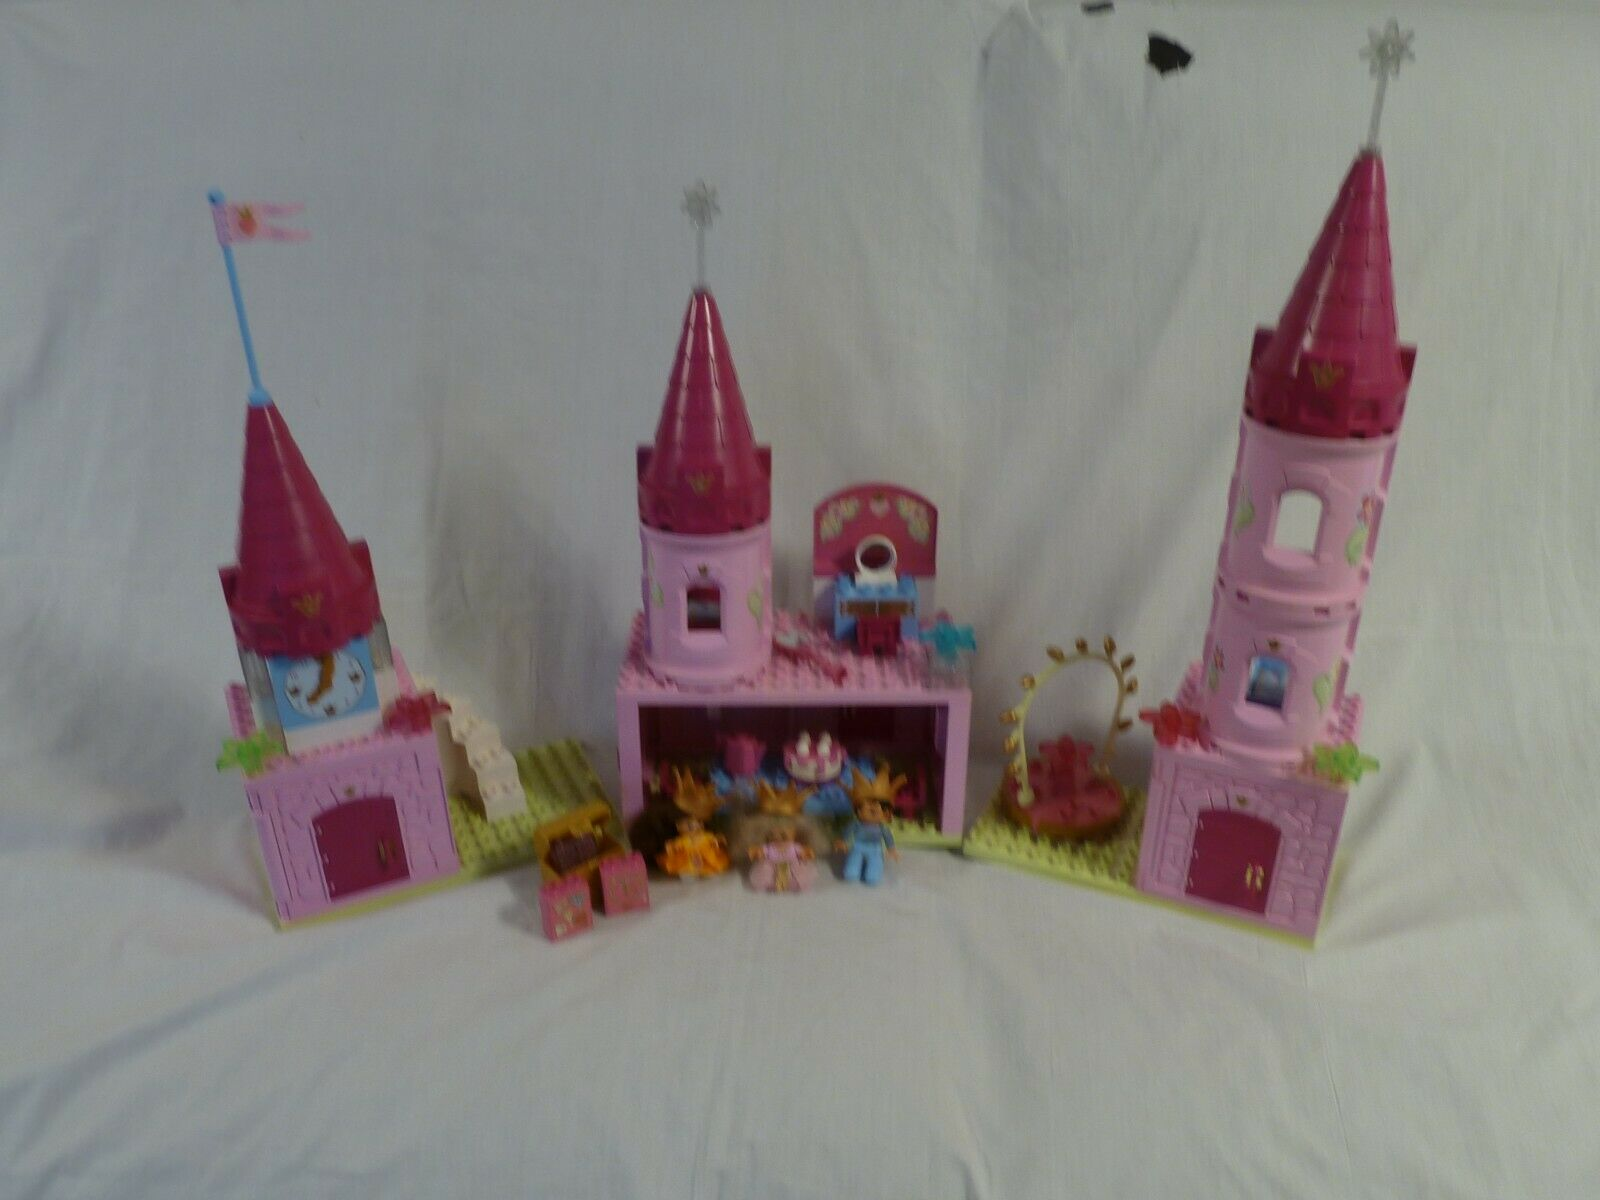 Lego Duplo 4820 Princess' Castle 100% complete without box